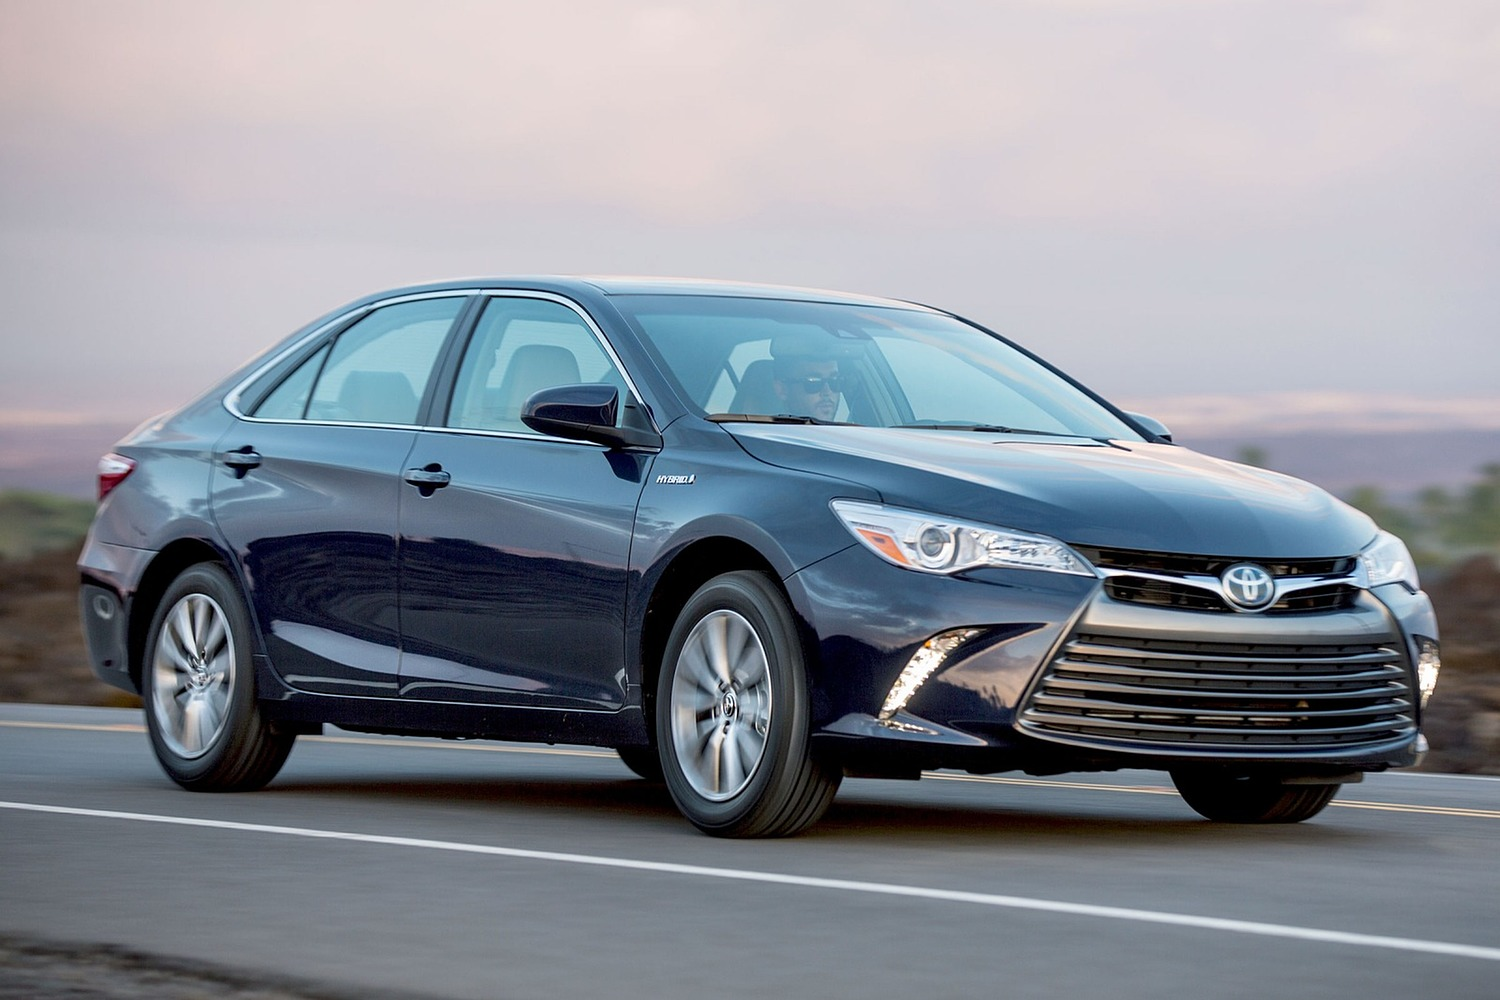 2016 Toyota Camry Hybrid Xle Sedan Exterior Shown